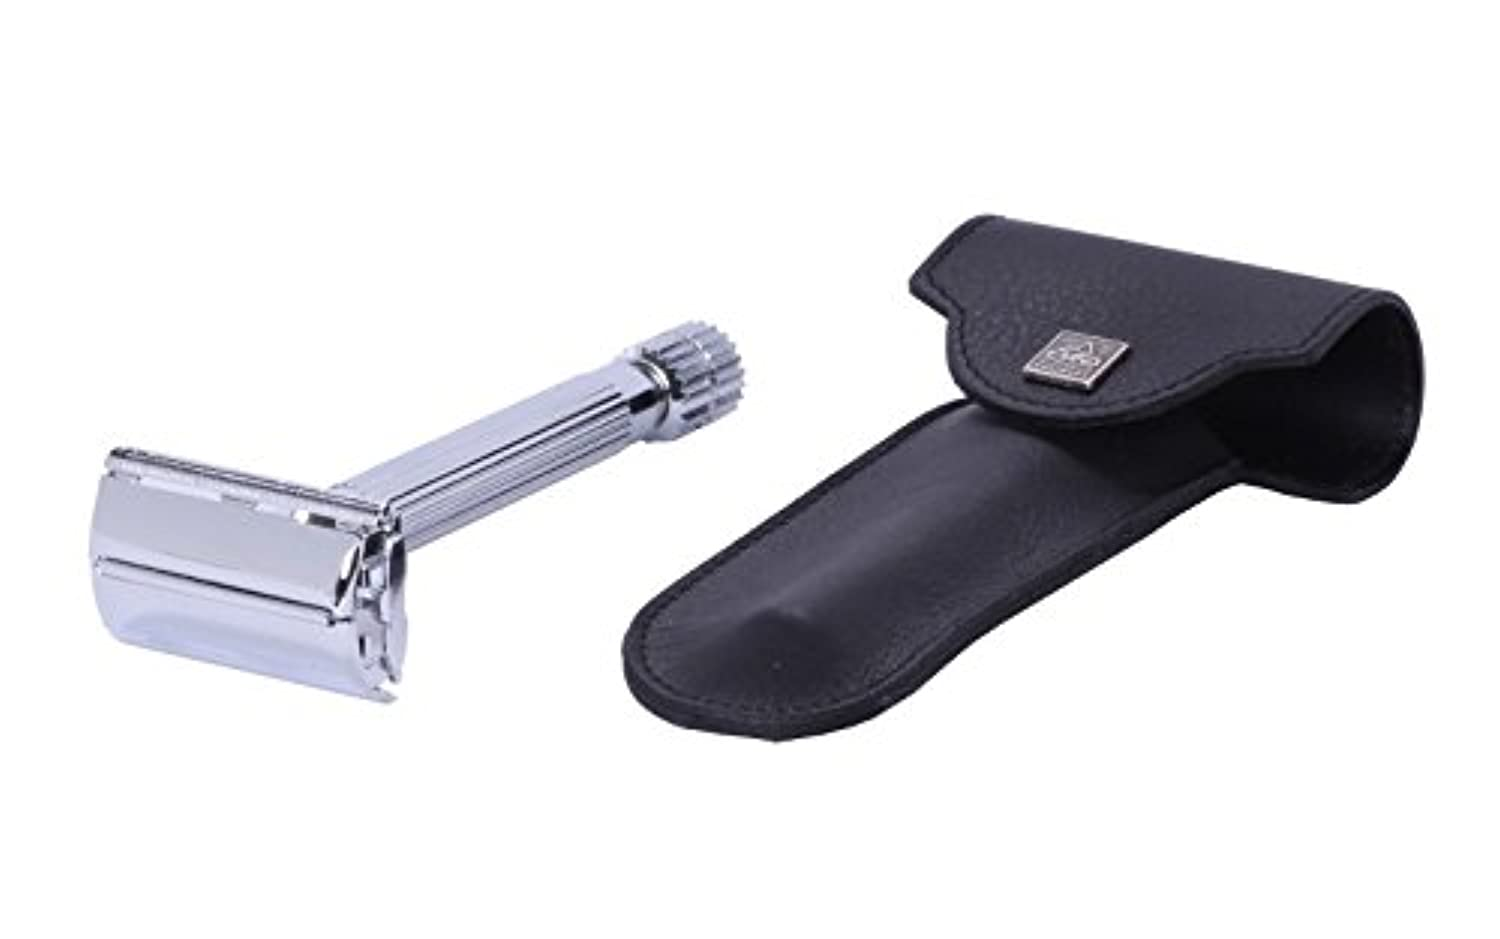 Erbe Safety Razor Tradition Chrome with genuine Leather Etui black